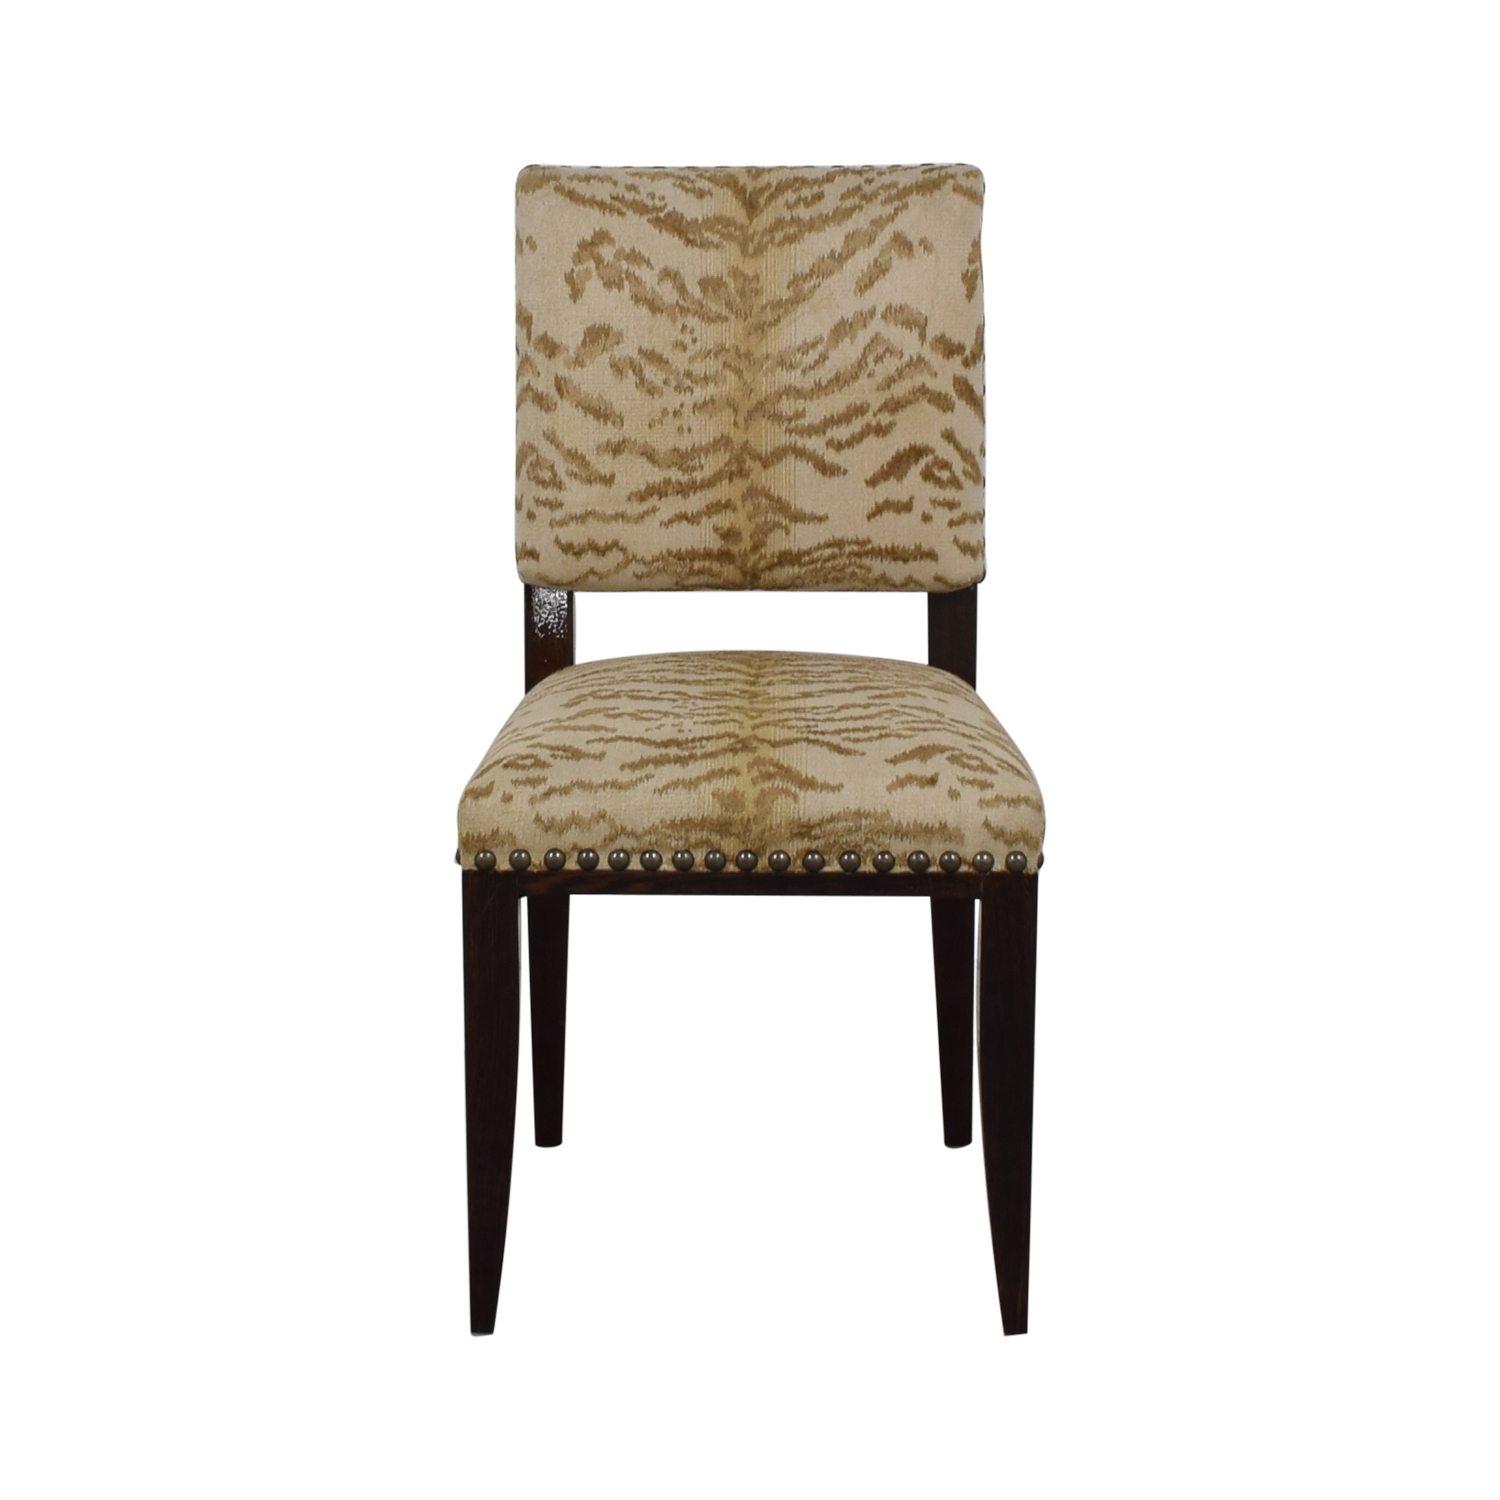 Furniture Masters Furniture Masters Nail Head Accent Chair price